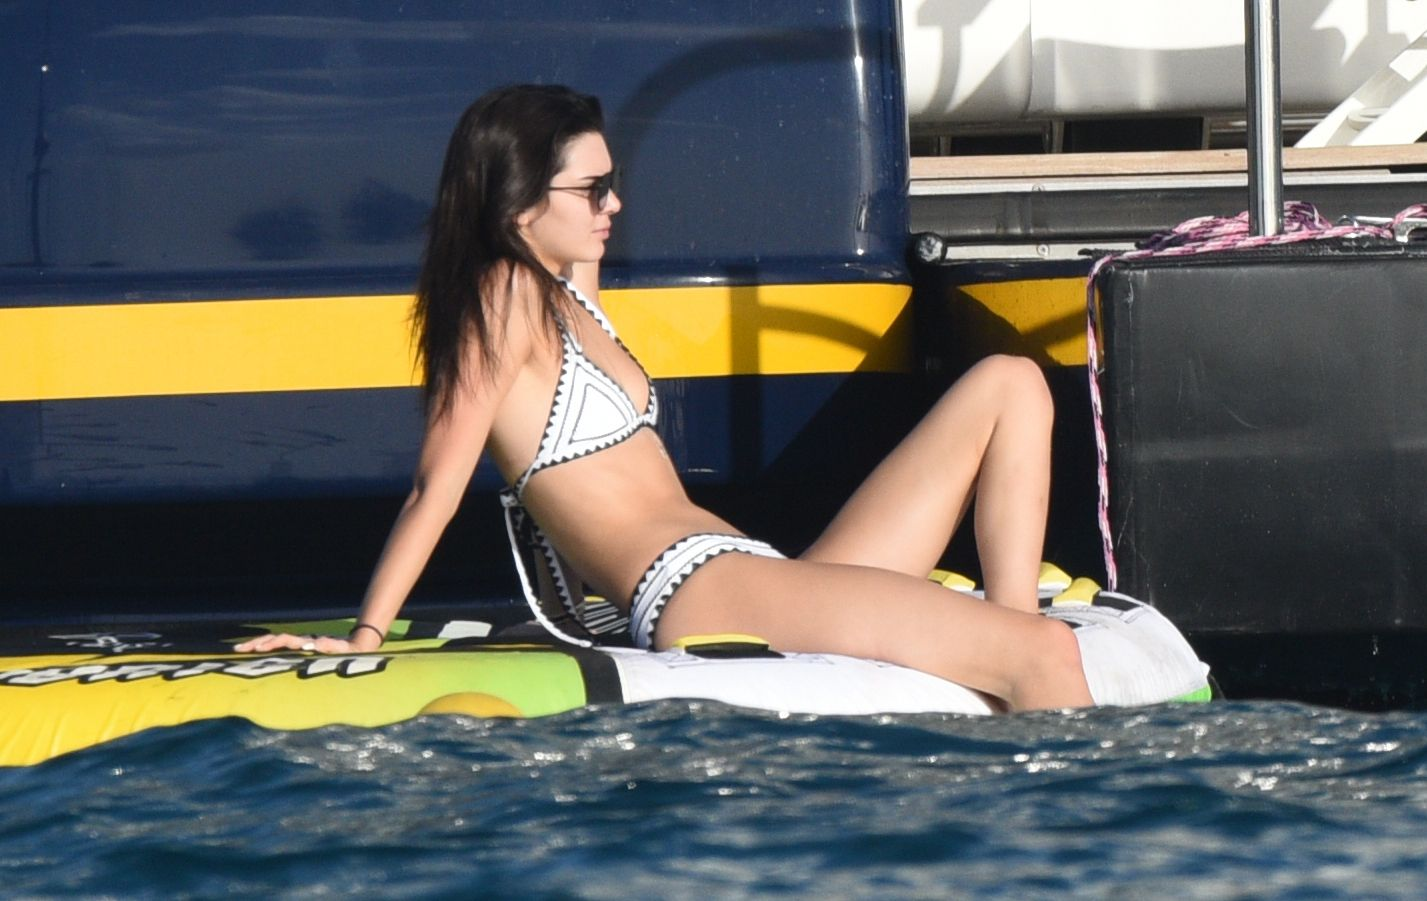 kendall-jenner-wearing-a-bikini-on-a-yacht-in-st-barts-07